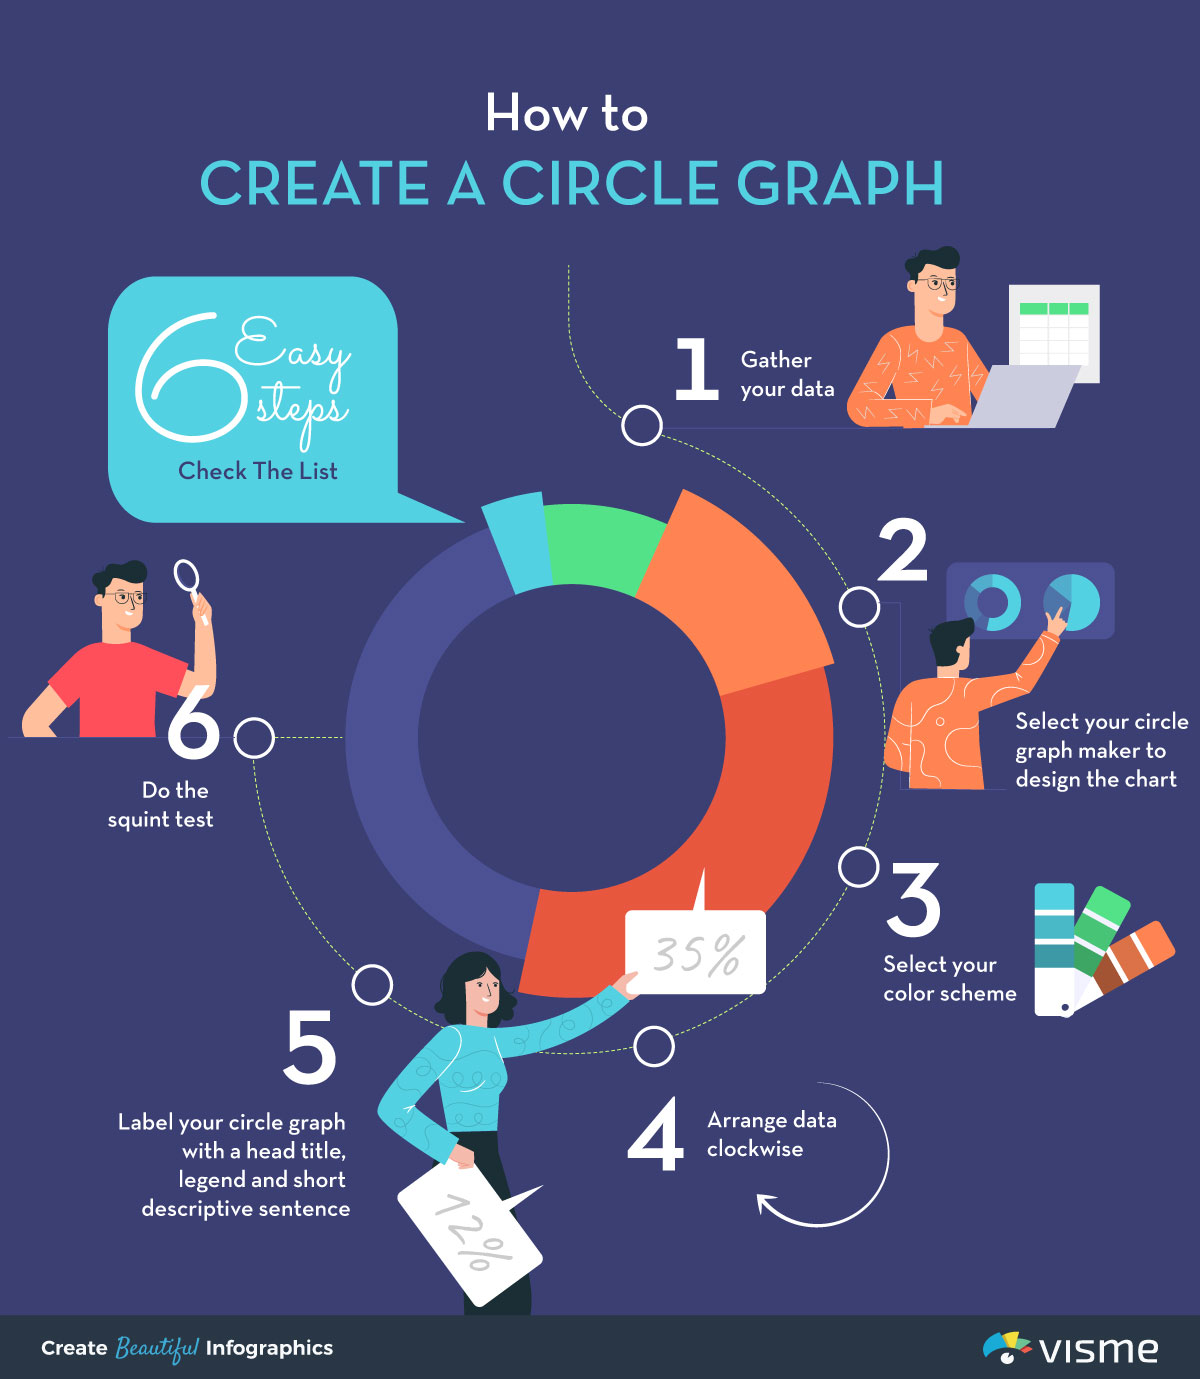 circle graph - how to create a circle graph infographic